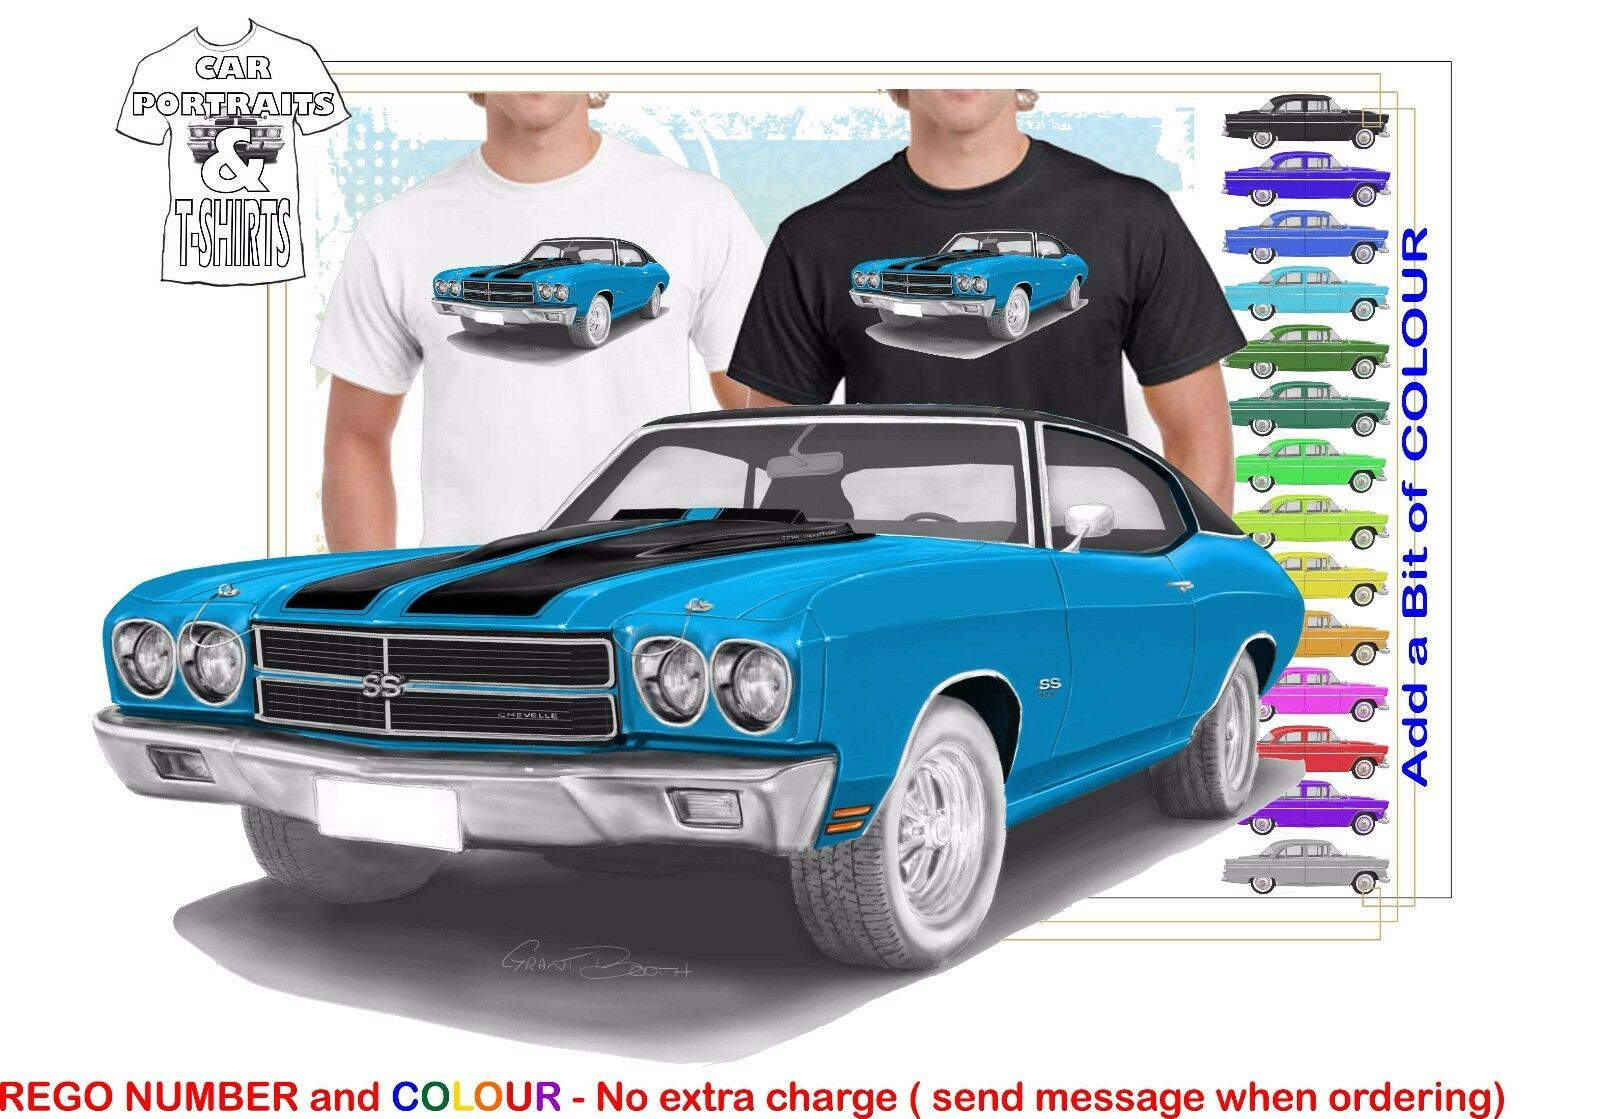 CLASSIC 1970 CHEVY CHEVELLE ILLUSTRATED T-SHIRT MUSCLE RETRO SPORTS CAR